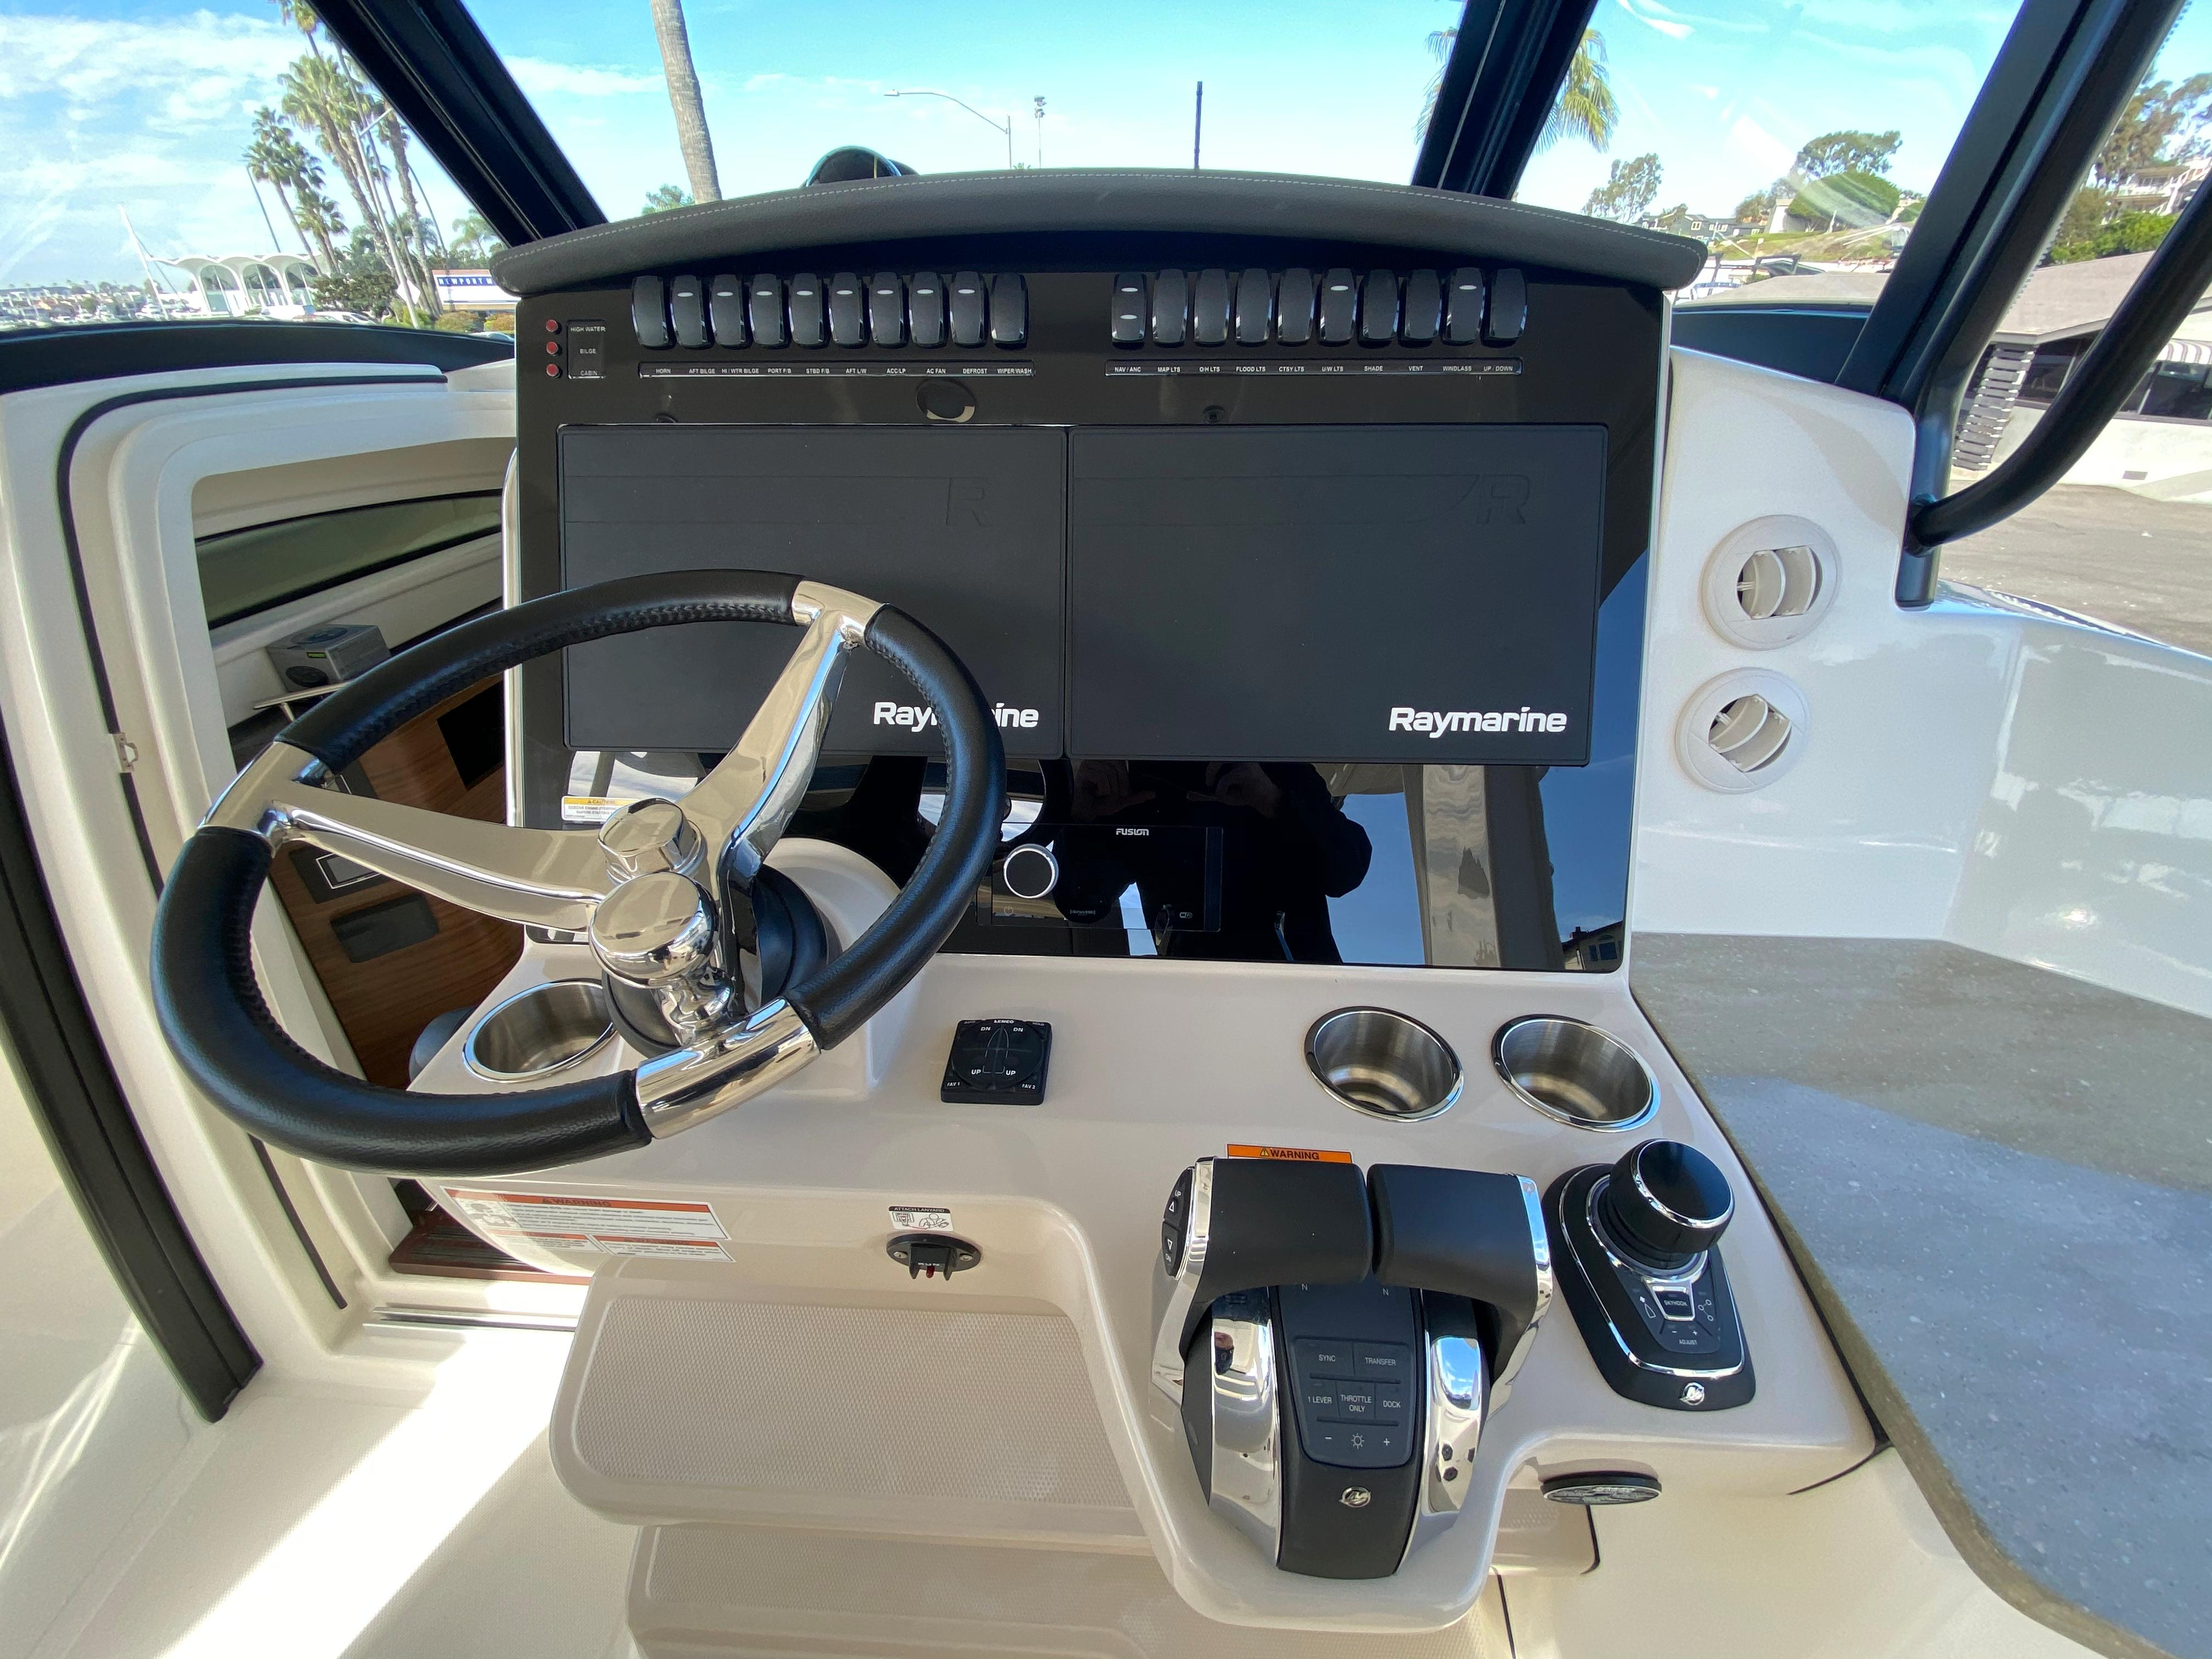 2021 Boston Whaler 350 Realm #BW0490G inventory image at Sun Country Yachts in Newport Beach